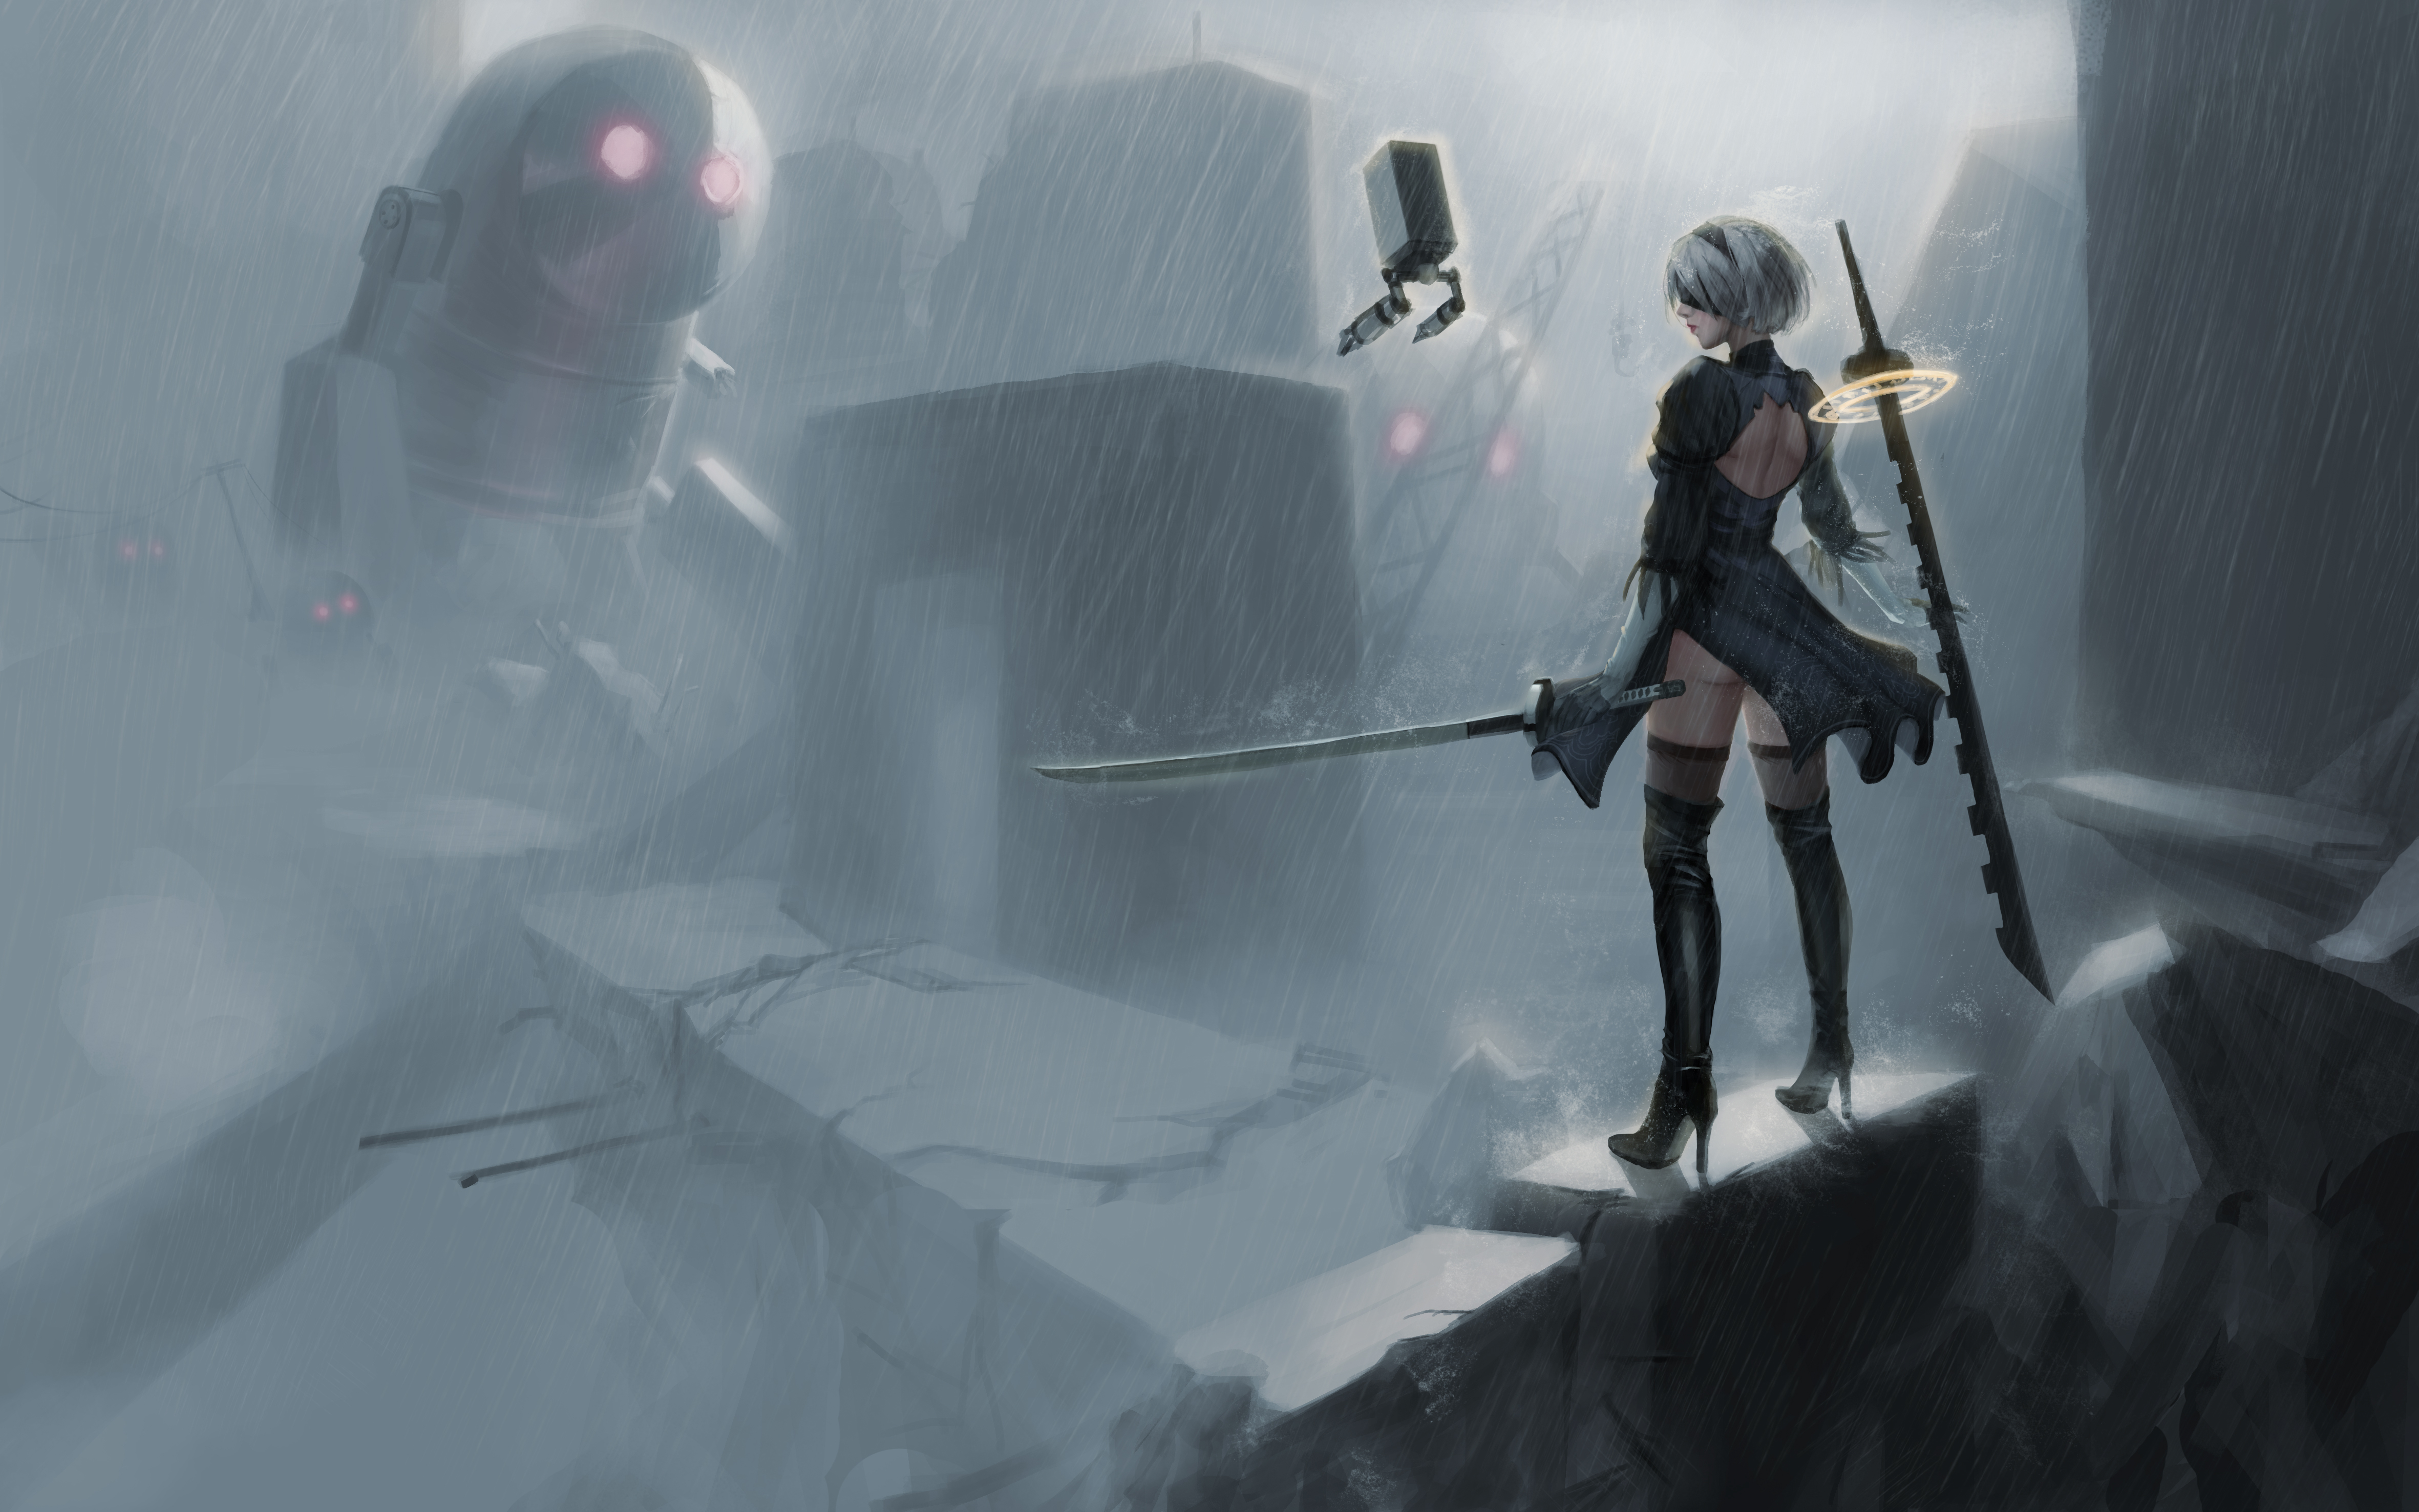 Nier Automata 5k, HD Anime, 4k Wallpapers, Images ...